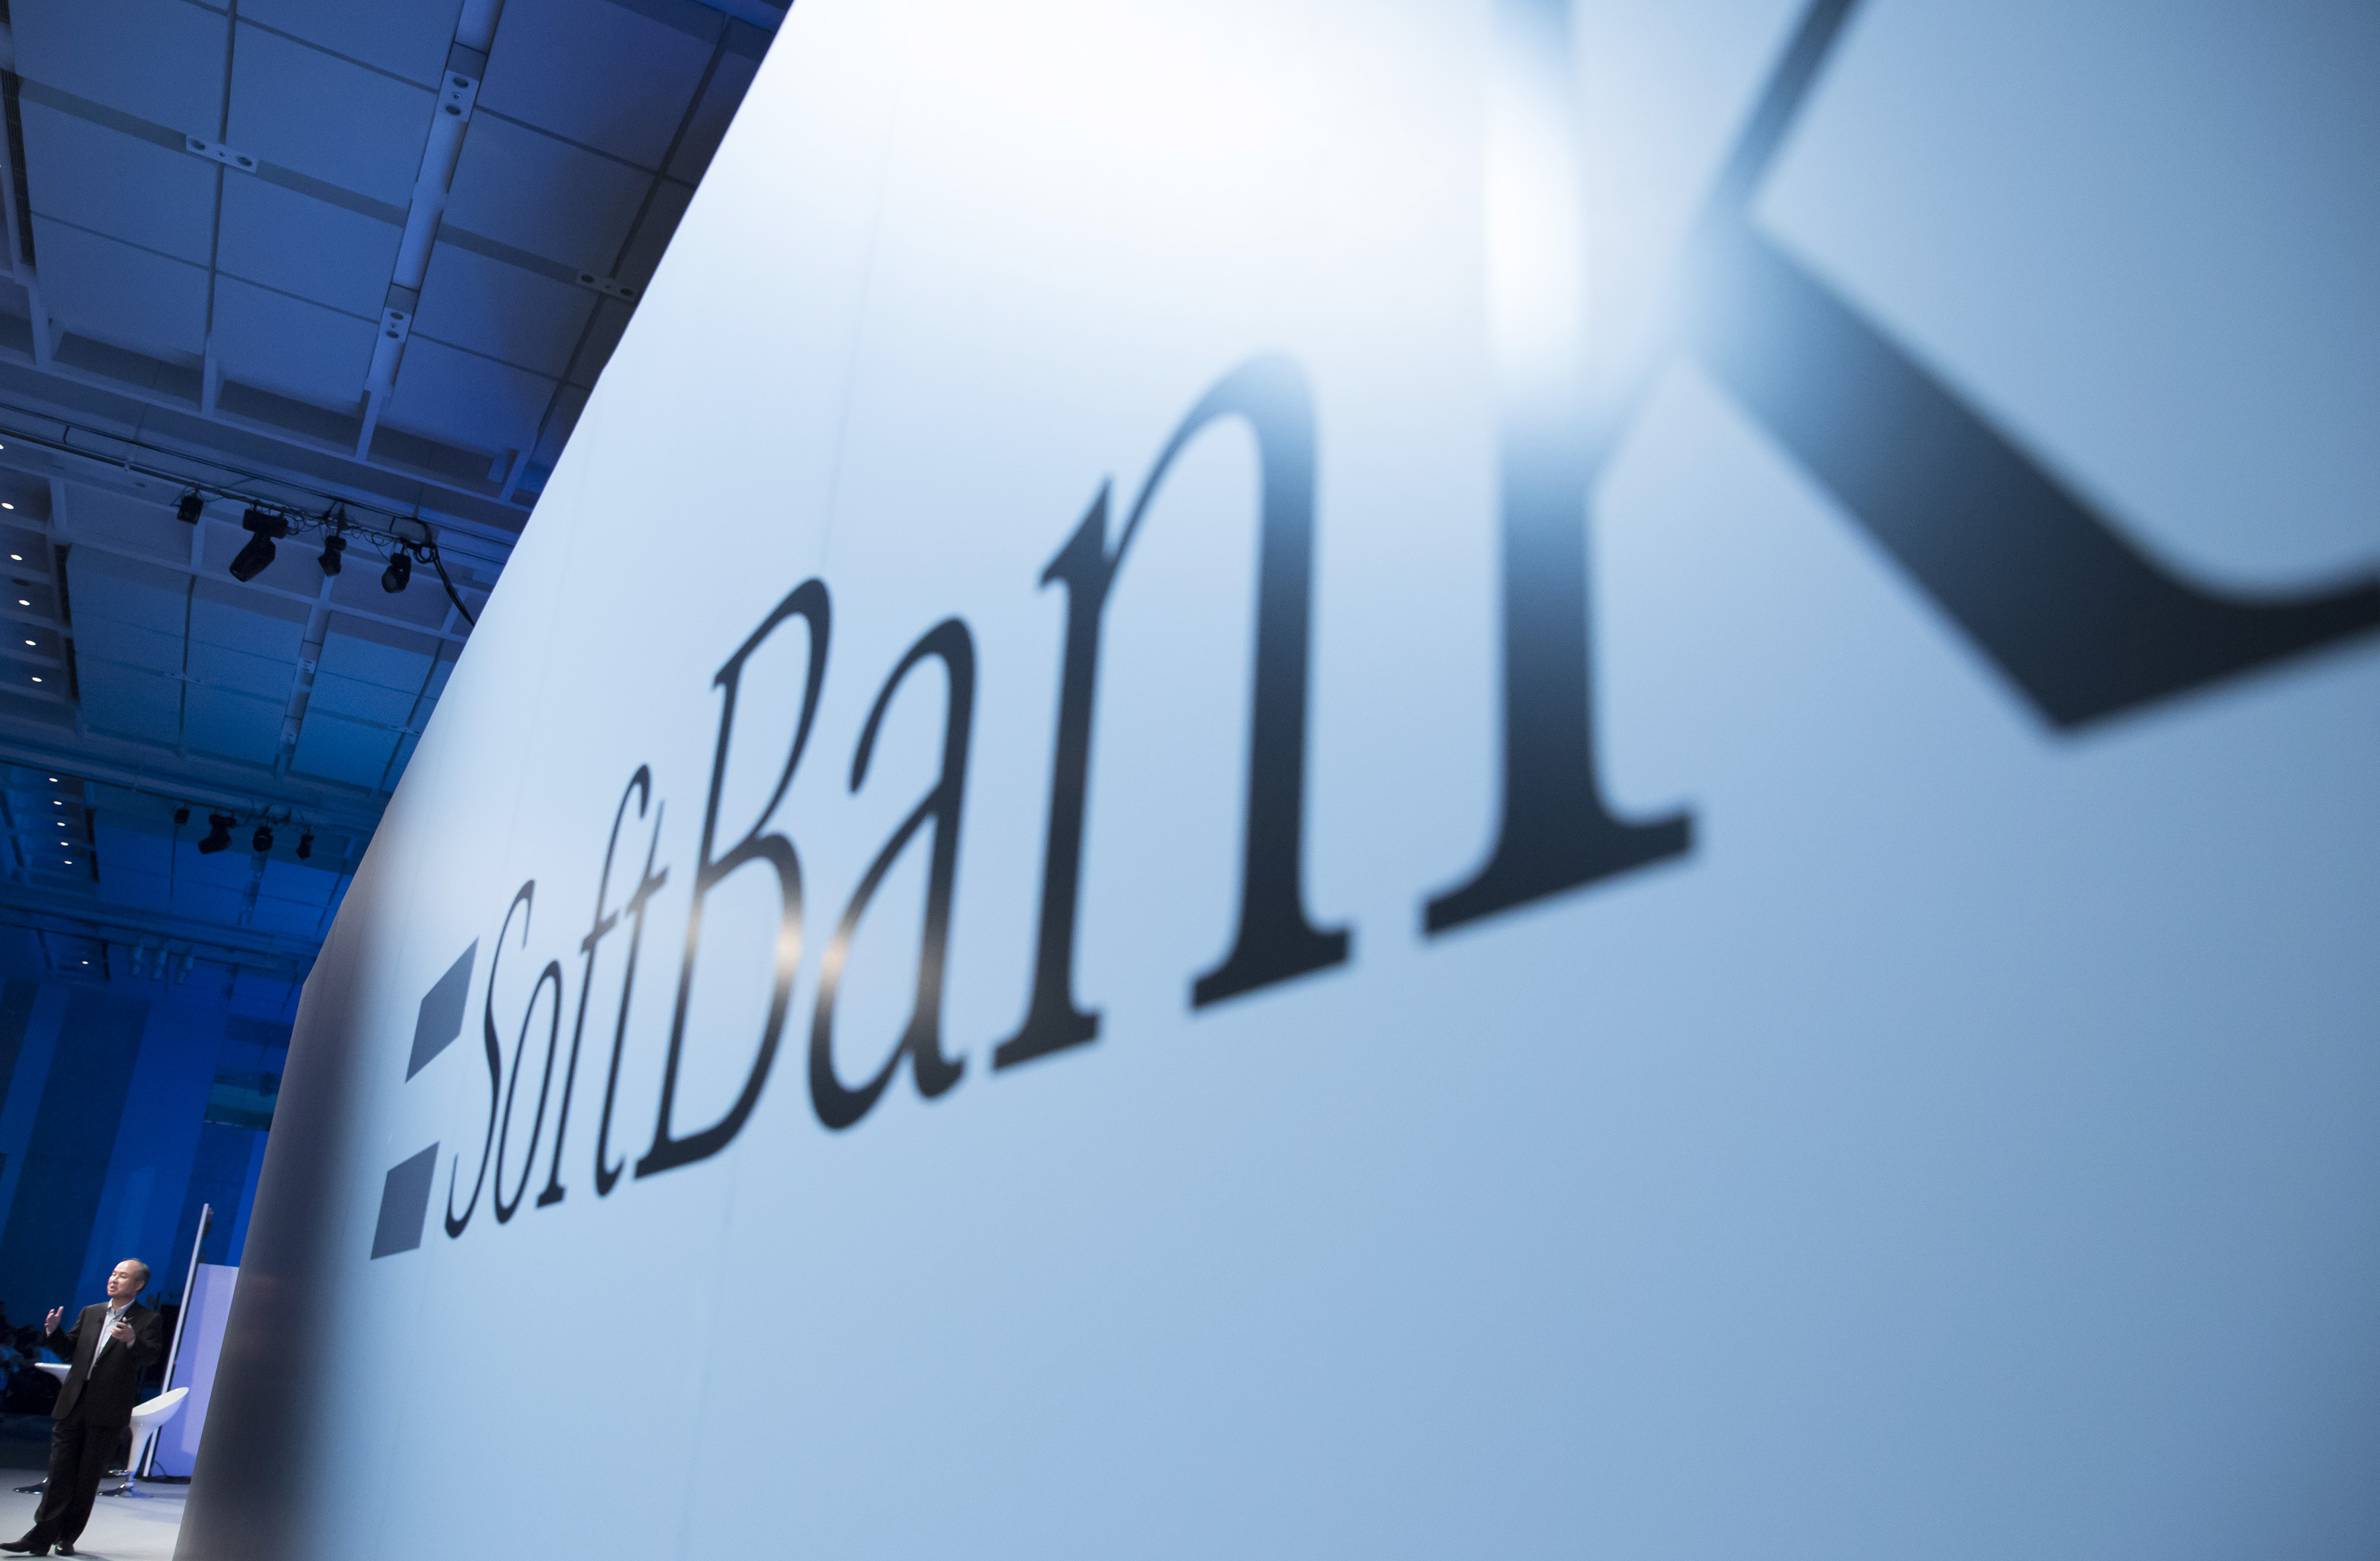 Softbank invests €460M in Germany's Auto1 car dealer platform